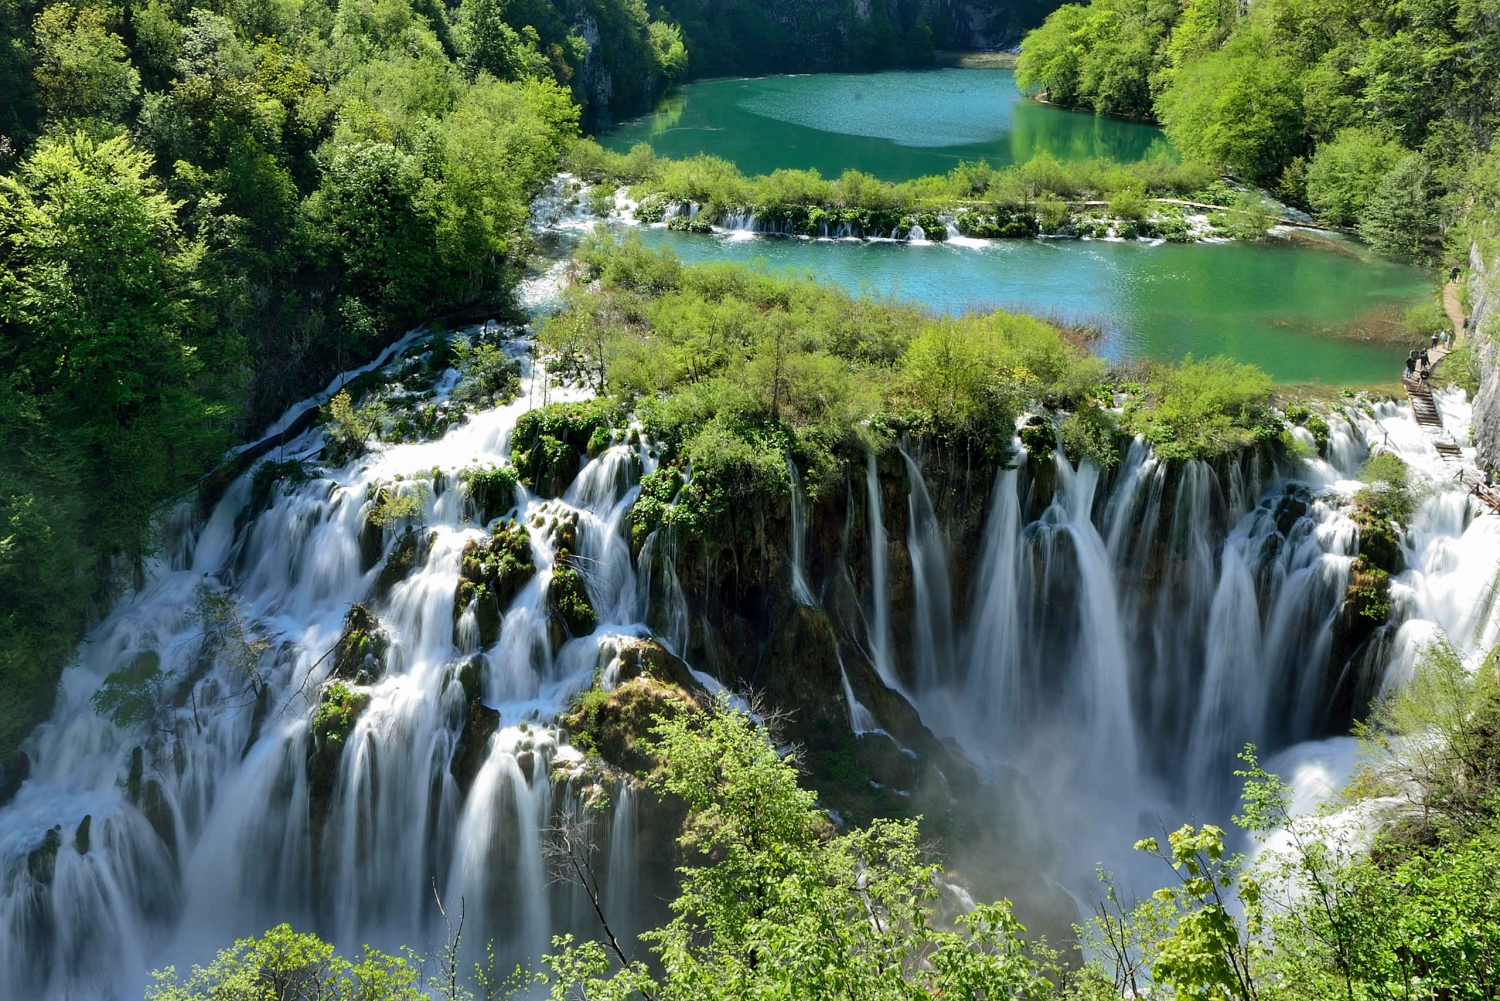 Novalja: Day Trip to National Park Plitvice Lakes